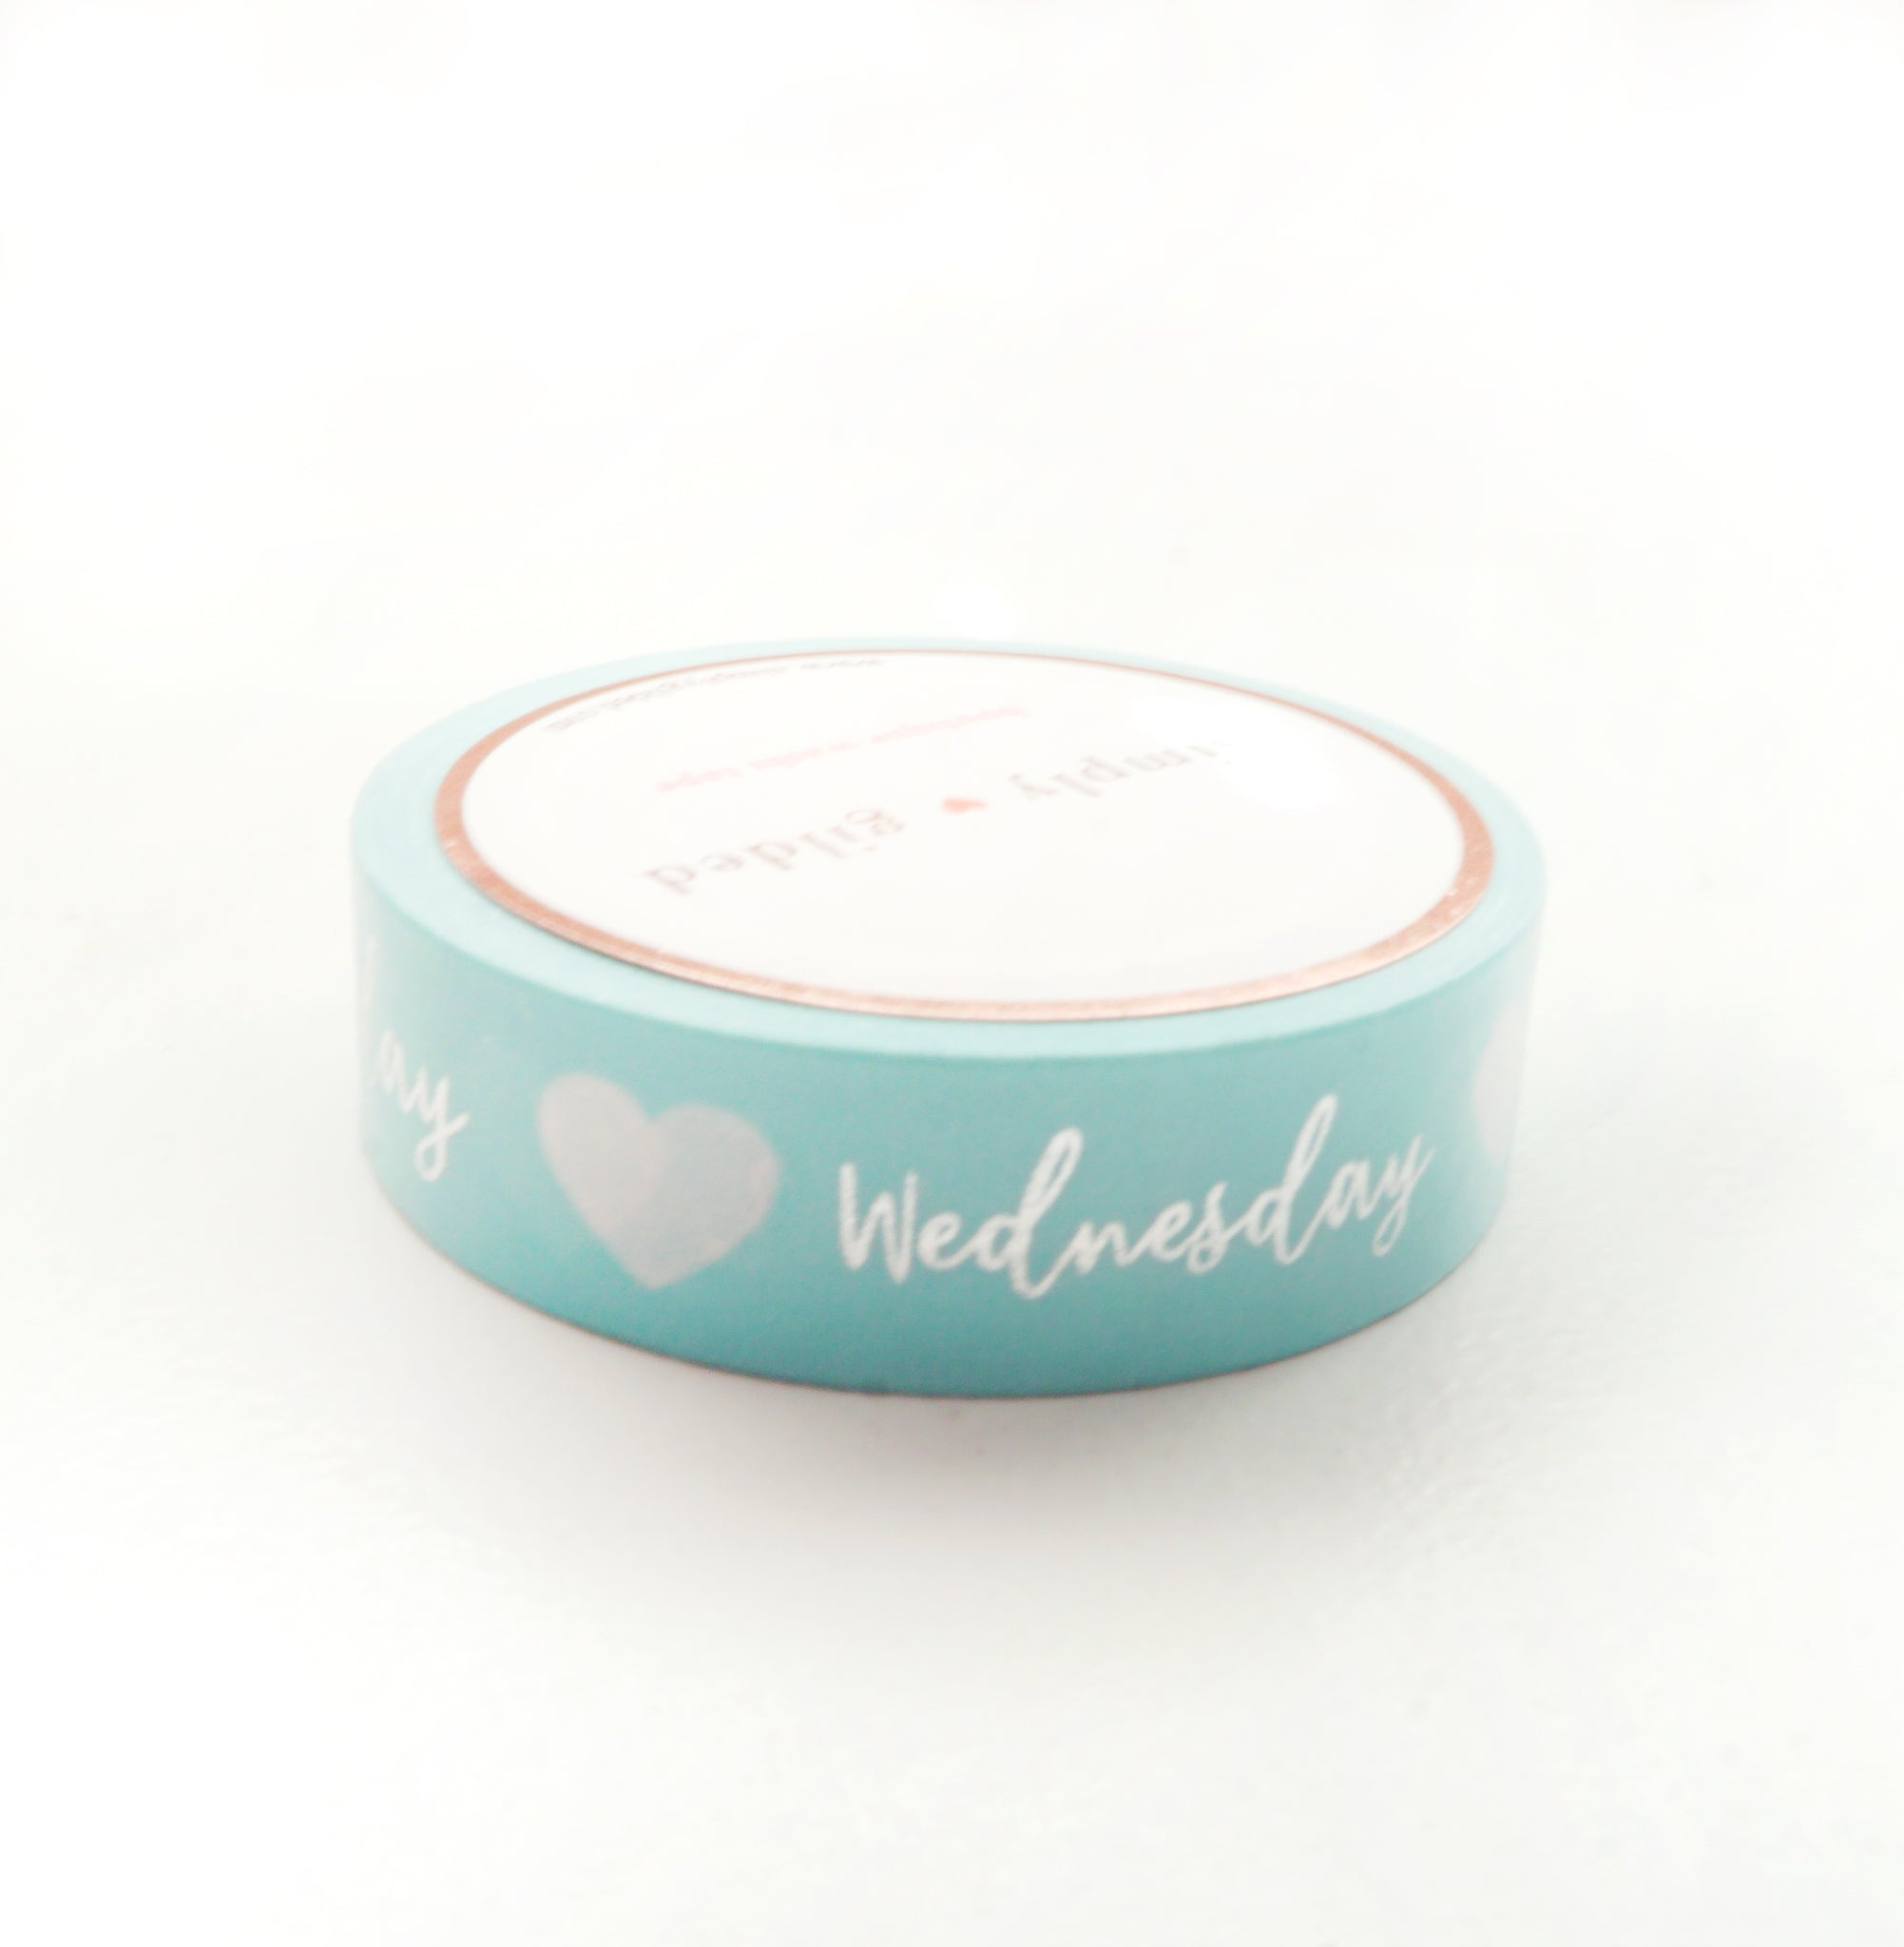 PERFORATED WASHI TAPE 13mm - Days of the Week ROBIN'S EGG BLUE + silver (May Release)